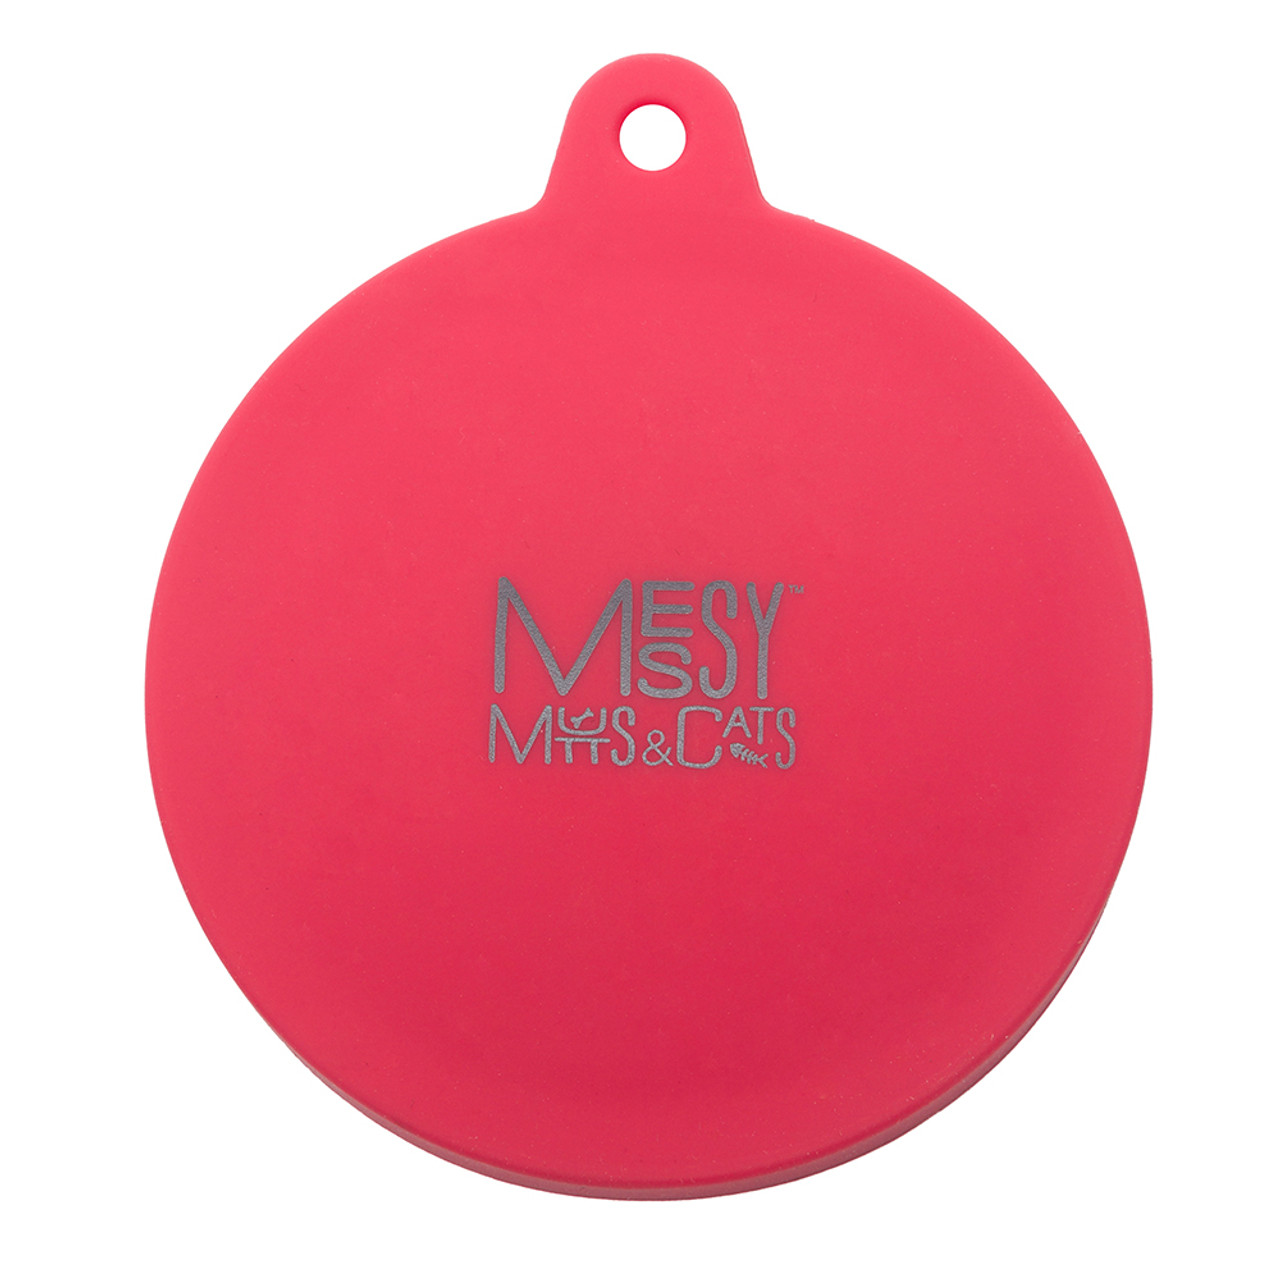 Messy Mutts & Cats Silicone Universal Can Cover